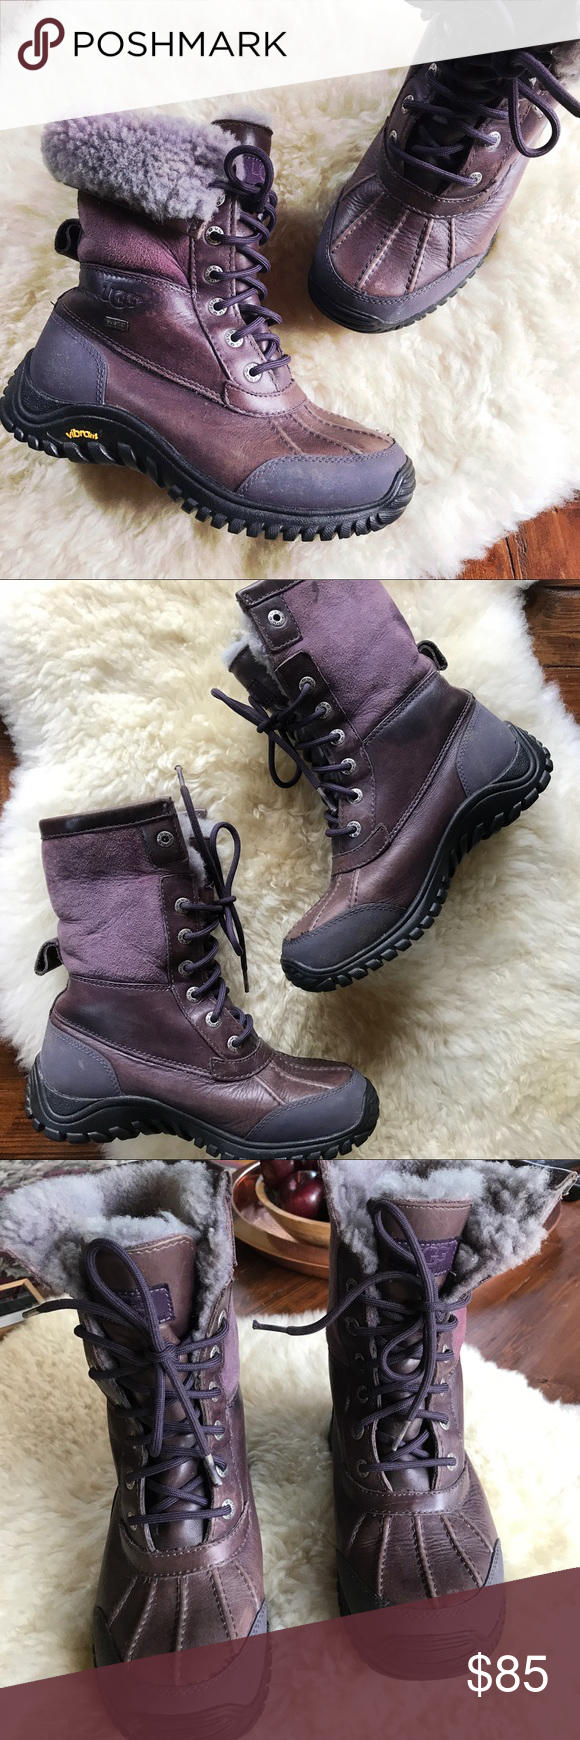 Ugg Adirondack boots in purple (as is) Stay warm in style! They are leather and sheepskin with a solid rubber sole in structurally sound condition.